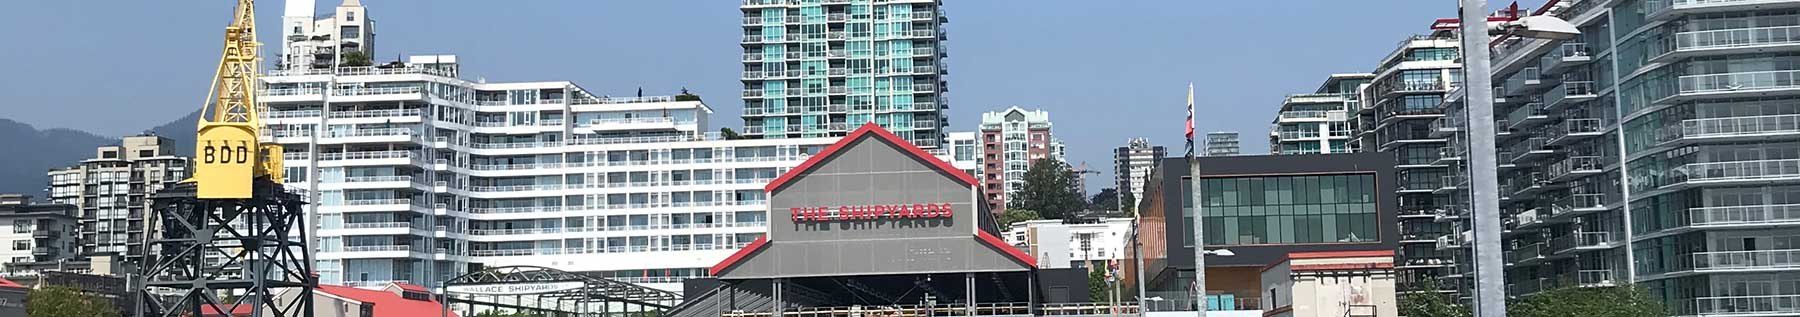 The Shipyards | North Vancouver